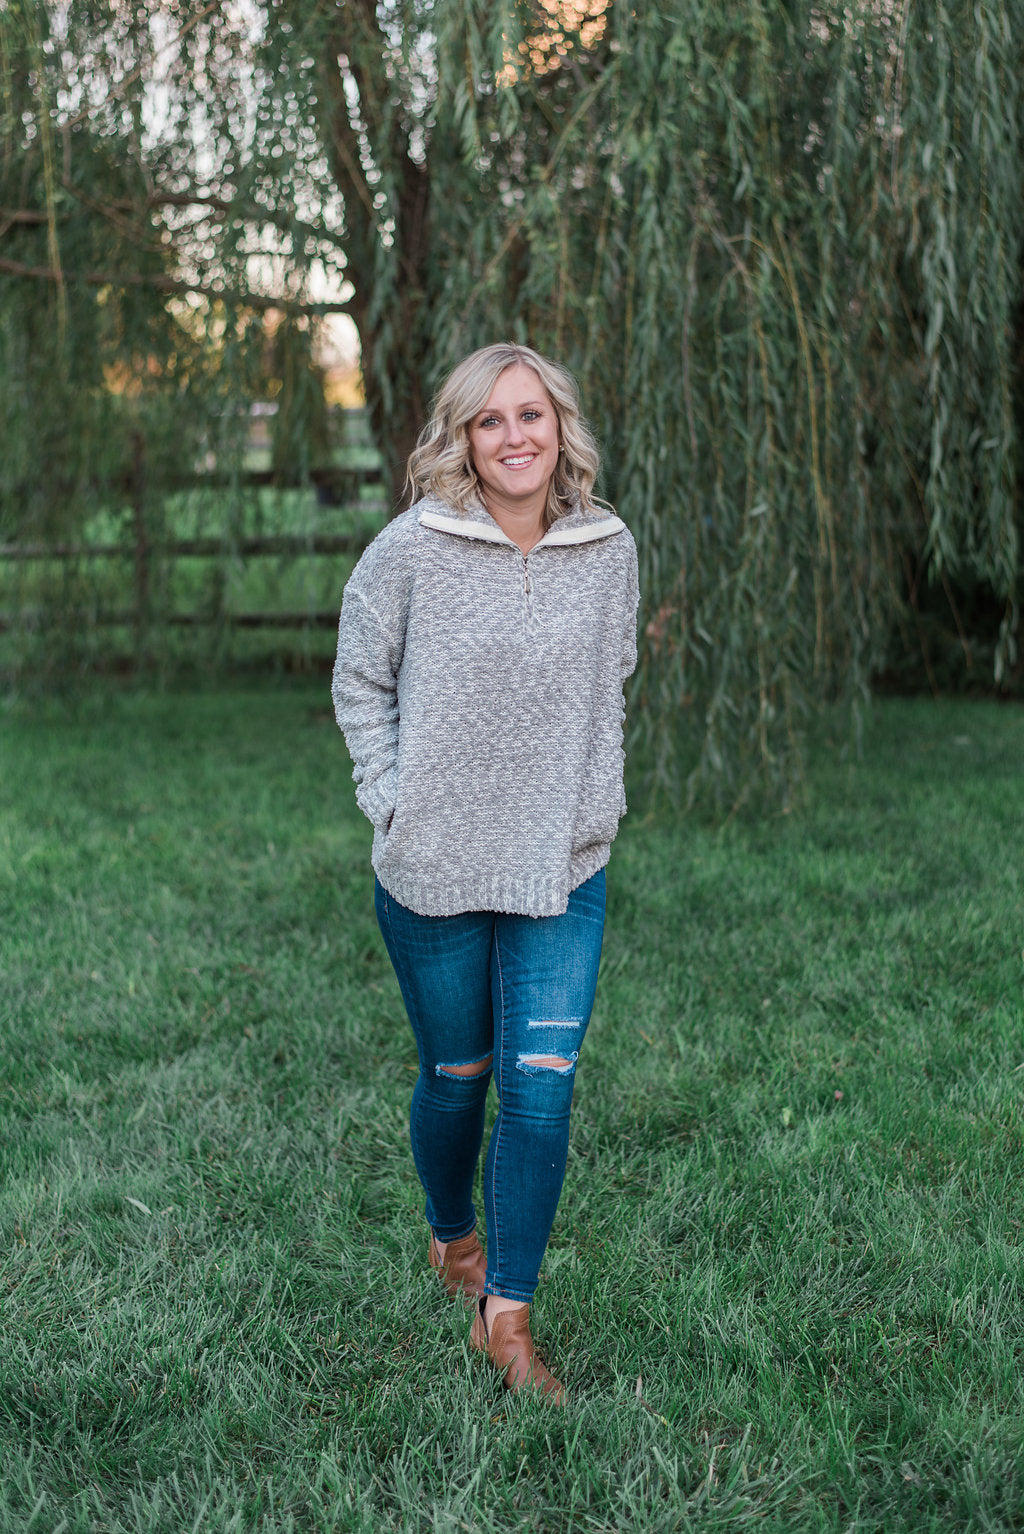 Gray, knit crochet, popcorn thread, zipped neck, pockets - Paige sweater